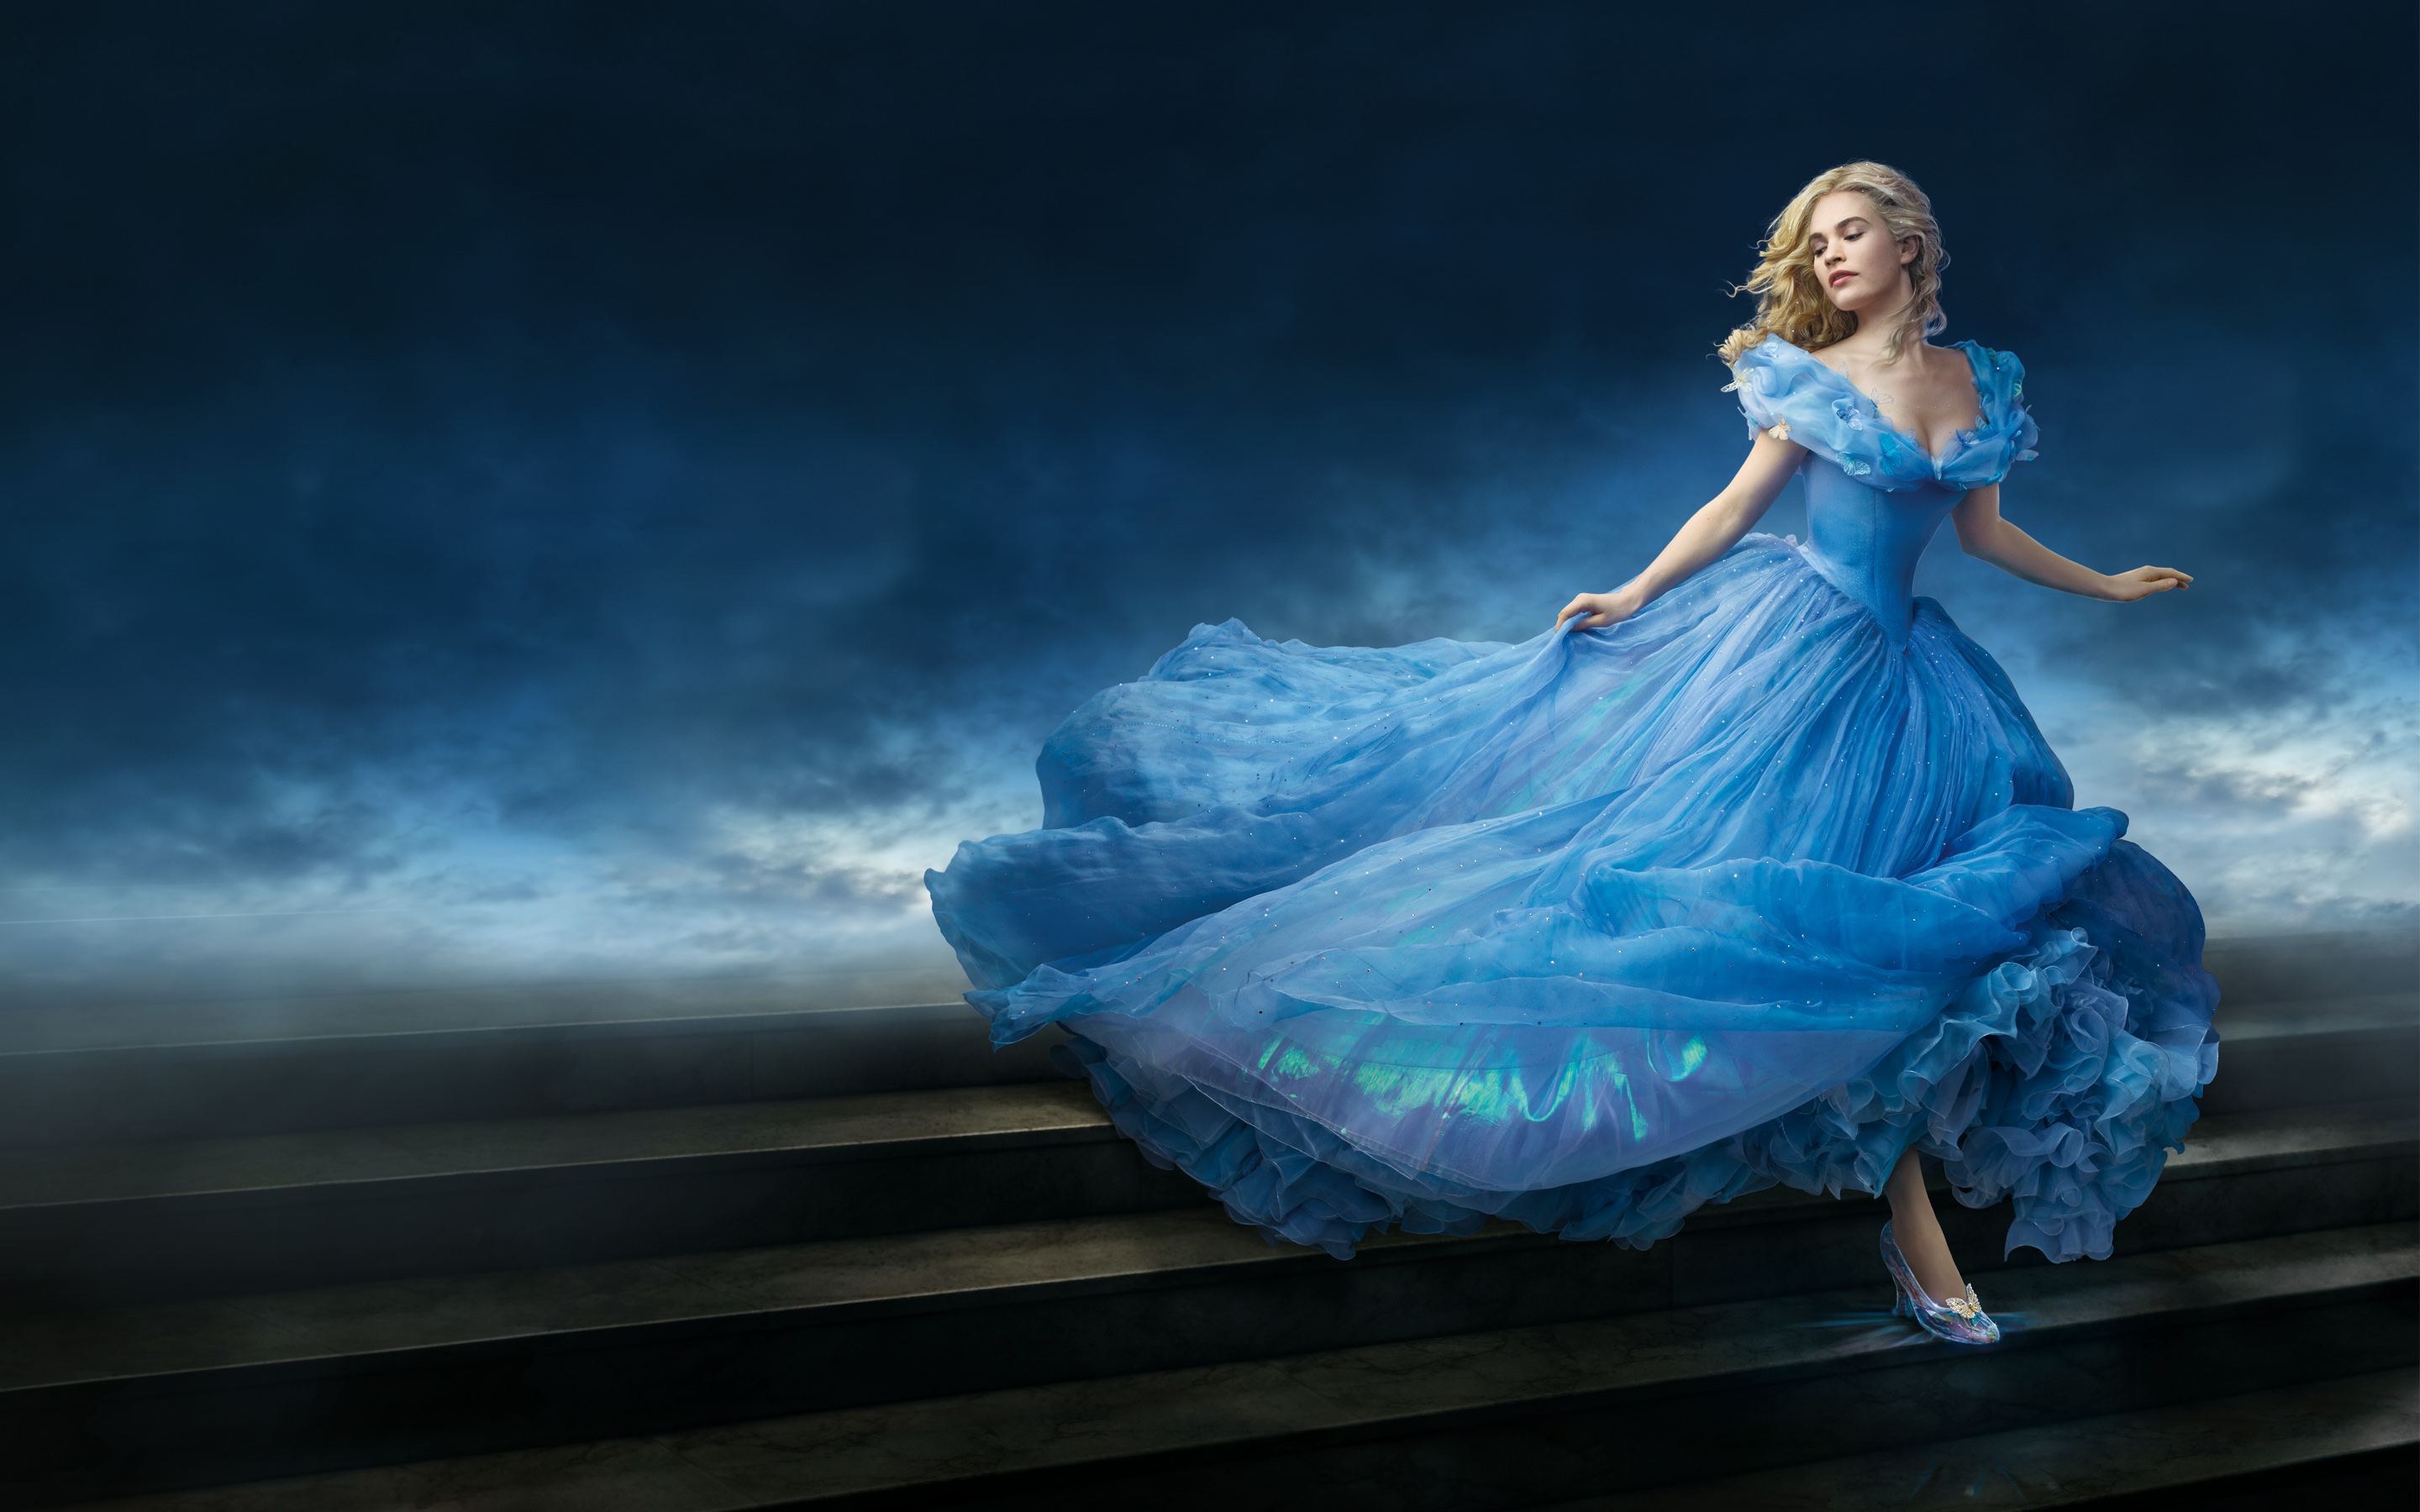 Lily James as Cinderella Wallpapers HD Wallpapers 2880x1800